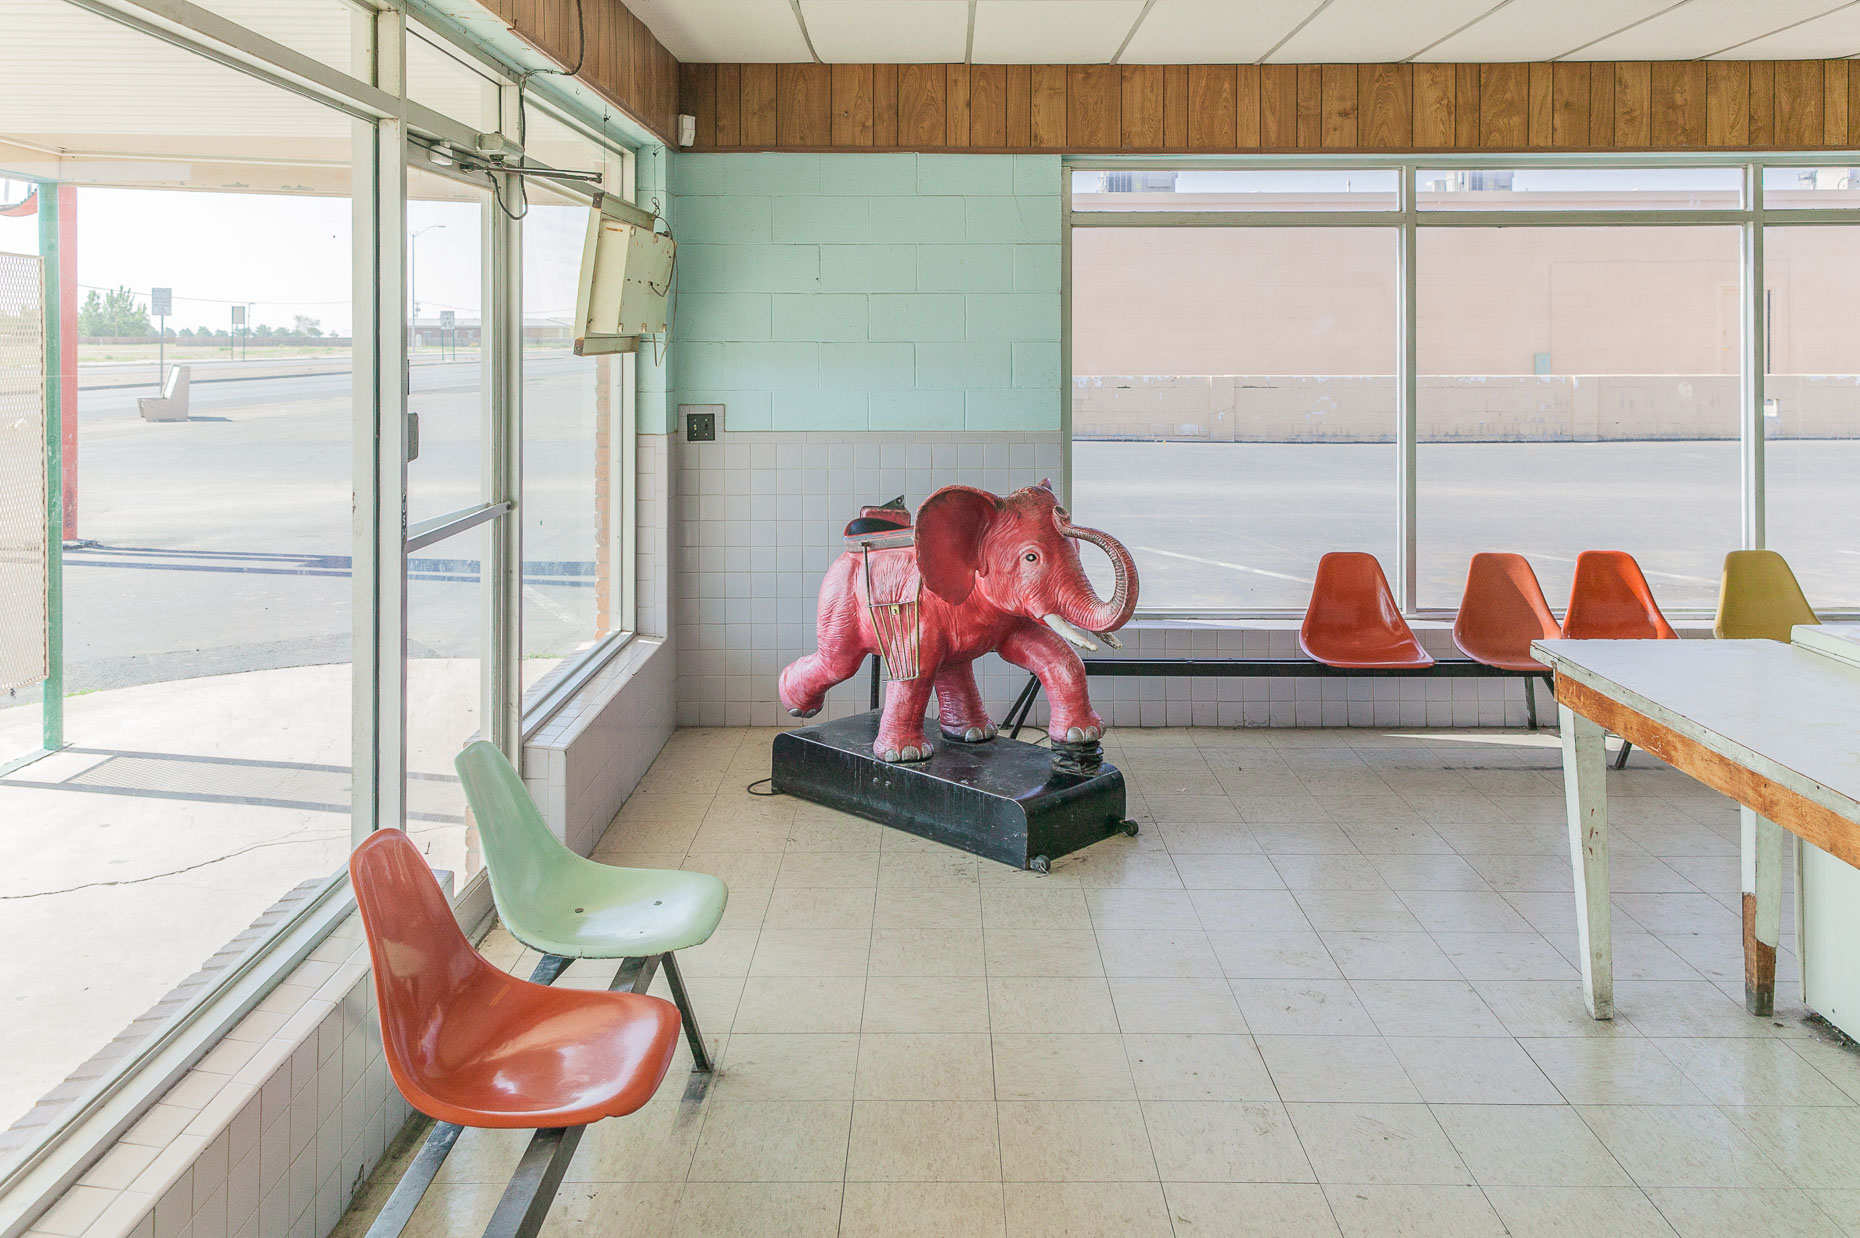 Laundromat laundry in Roswell, New Mexico with pink elephant coin operated ride by David Zaitz